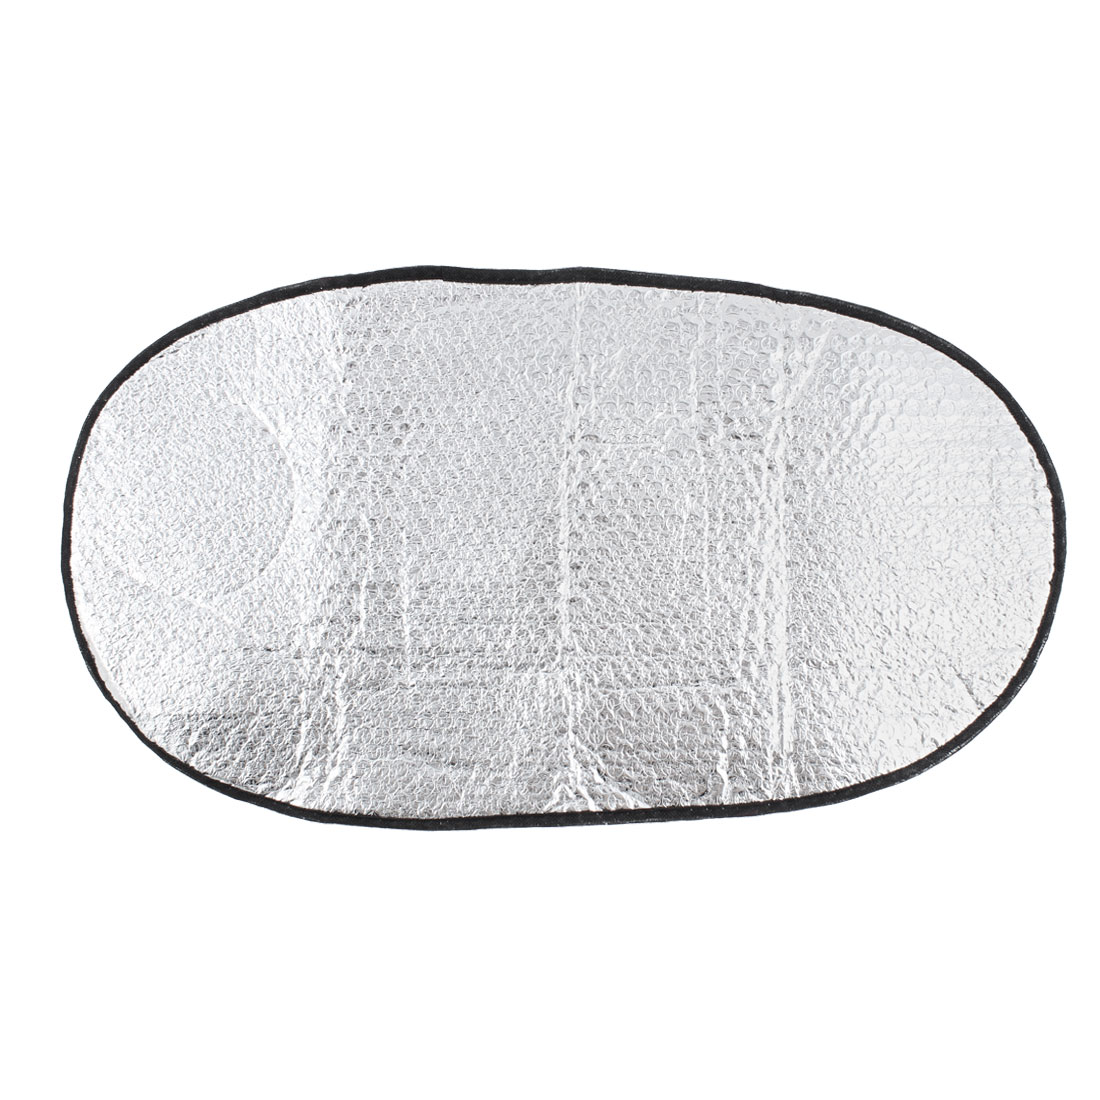 Motorcycle Heat Insulation Pad Aluminum Foil Waterproof Cushion Mat Seat Cover 60cm x 36cm